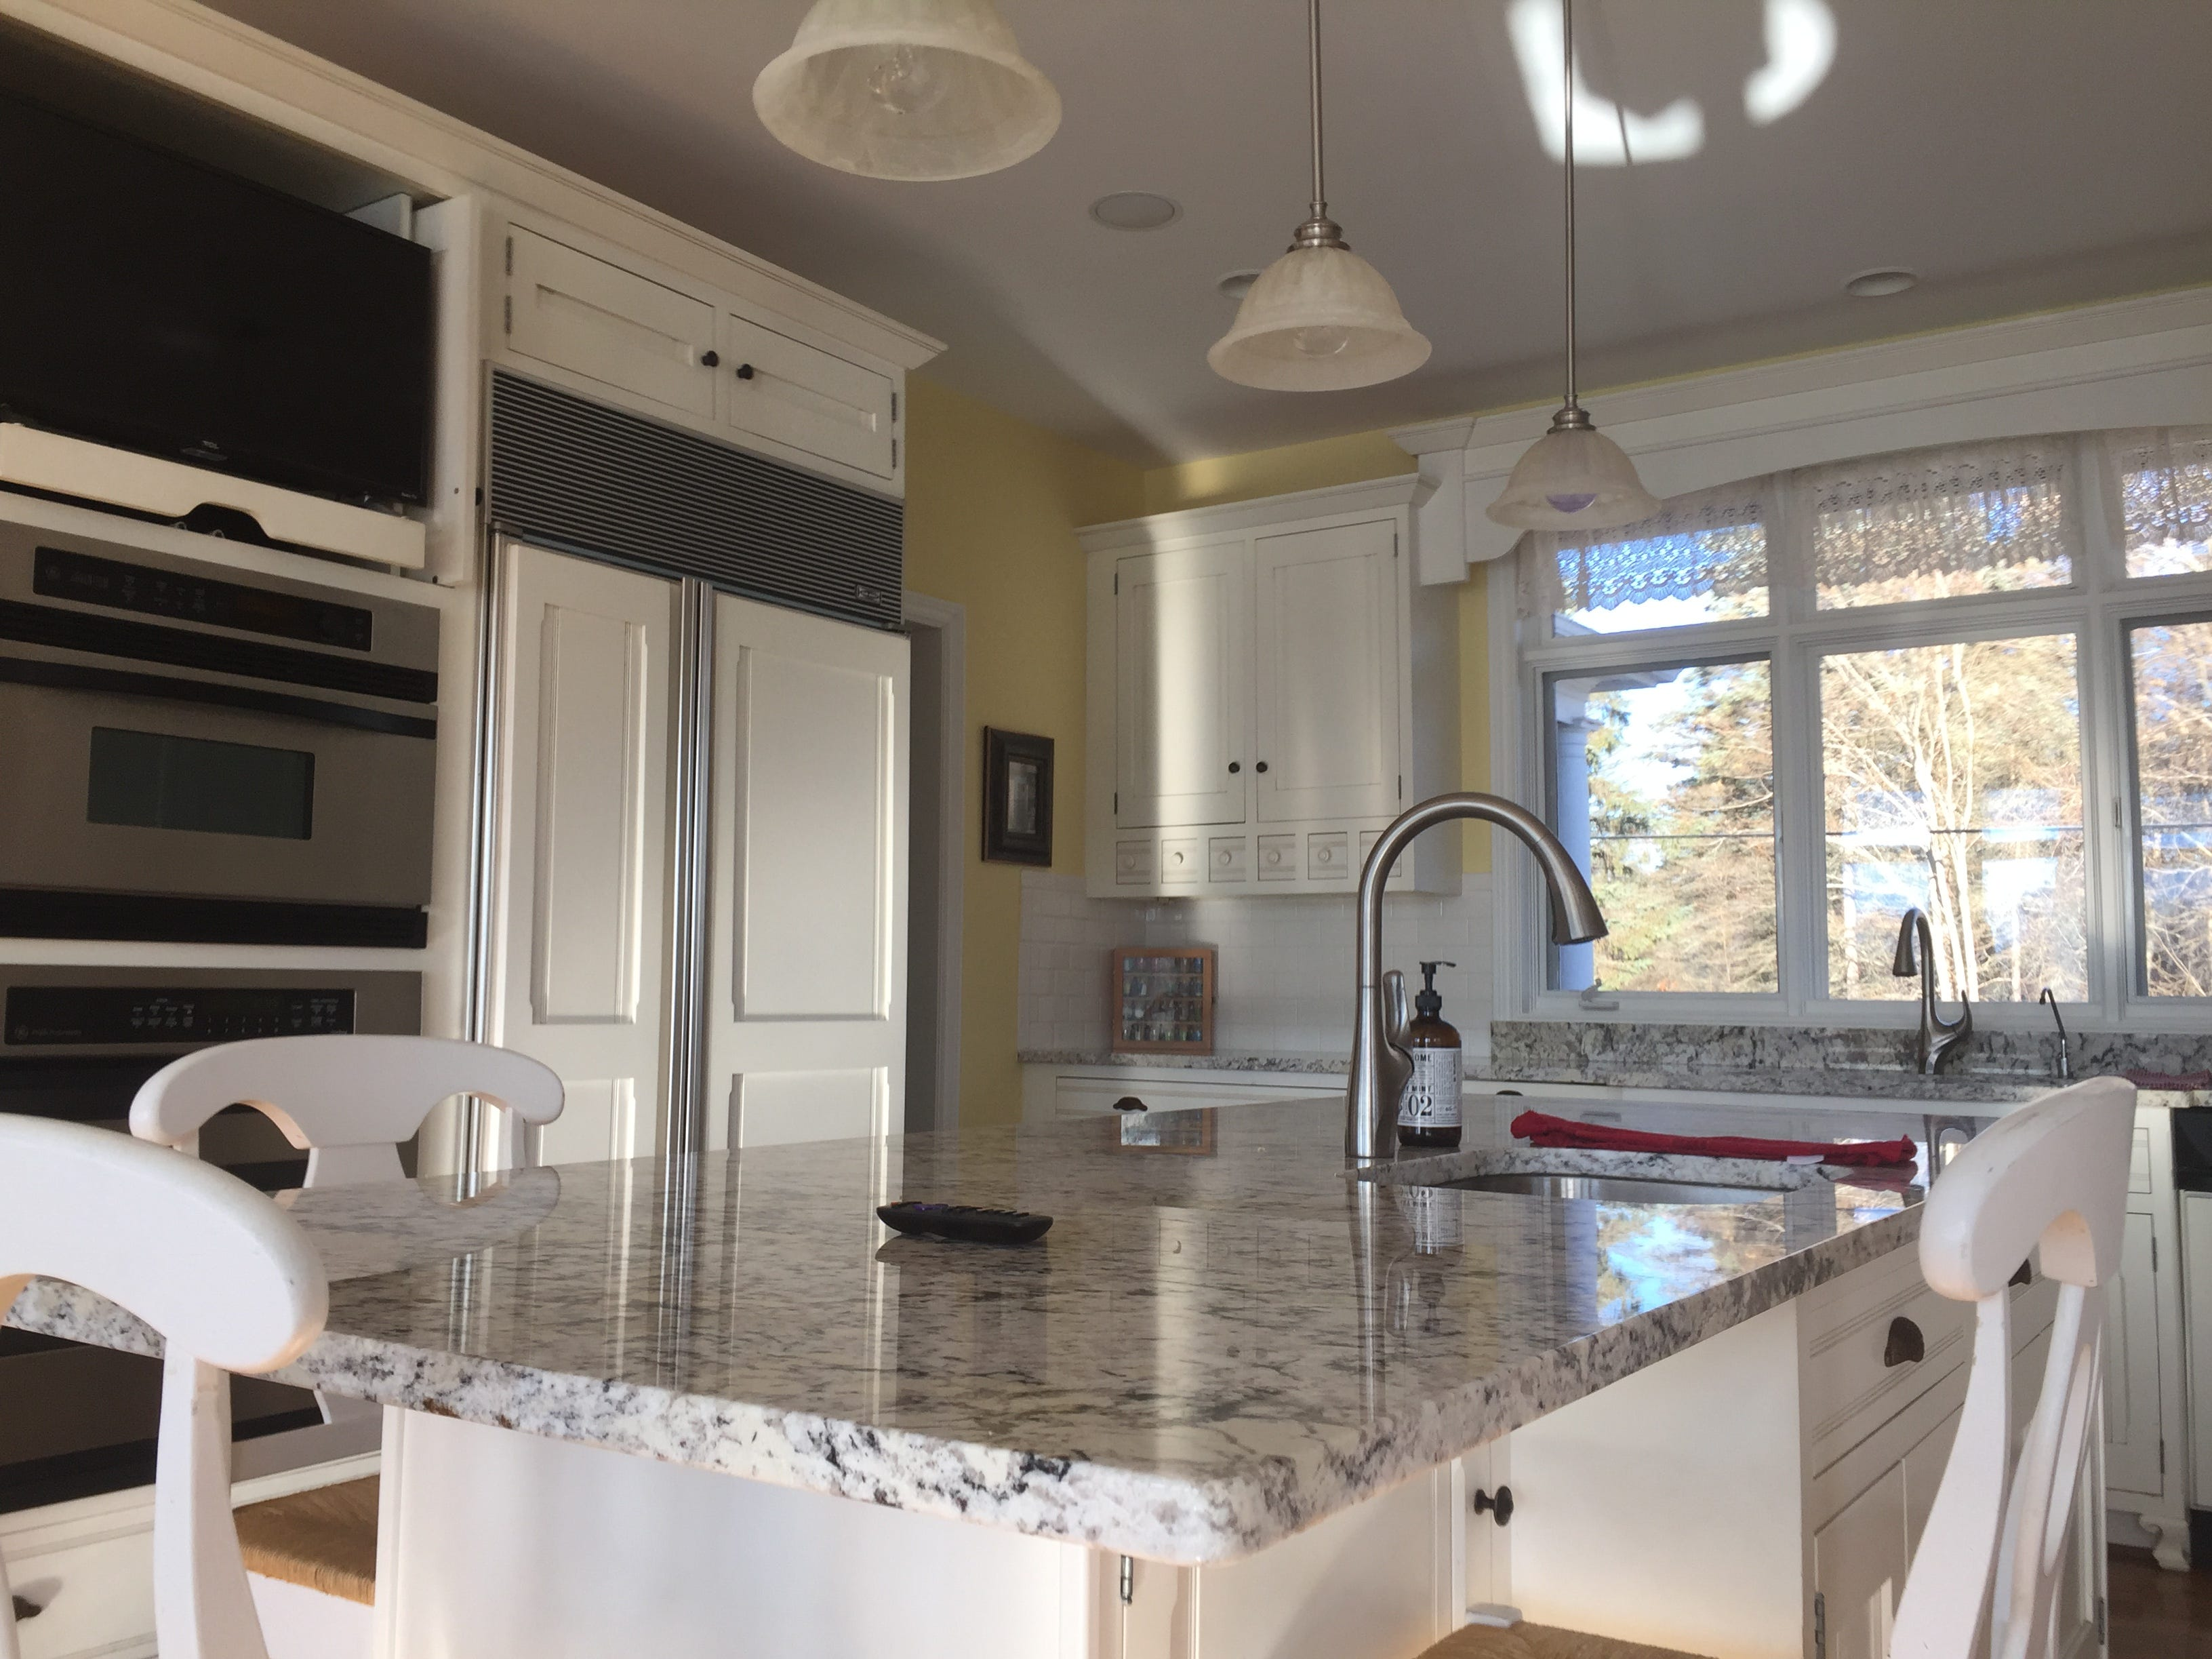 A granite kitchen island provides extra space for family dining and entertaining guests in a Clifford Road home in Genoa Township, shown Tuesday, Dec. 4, 2018